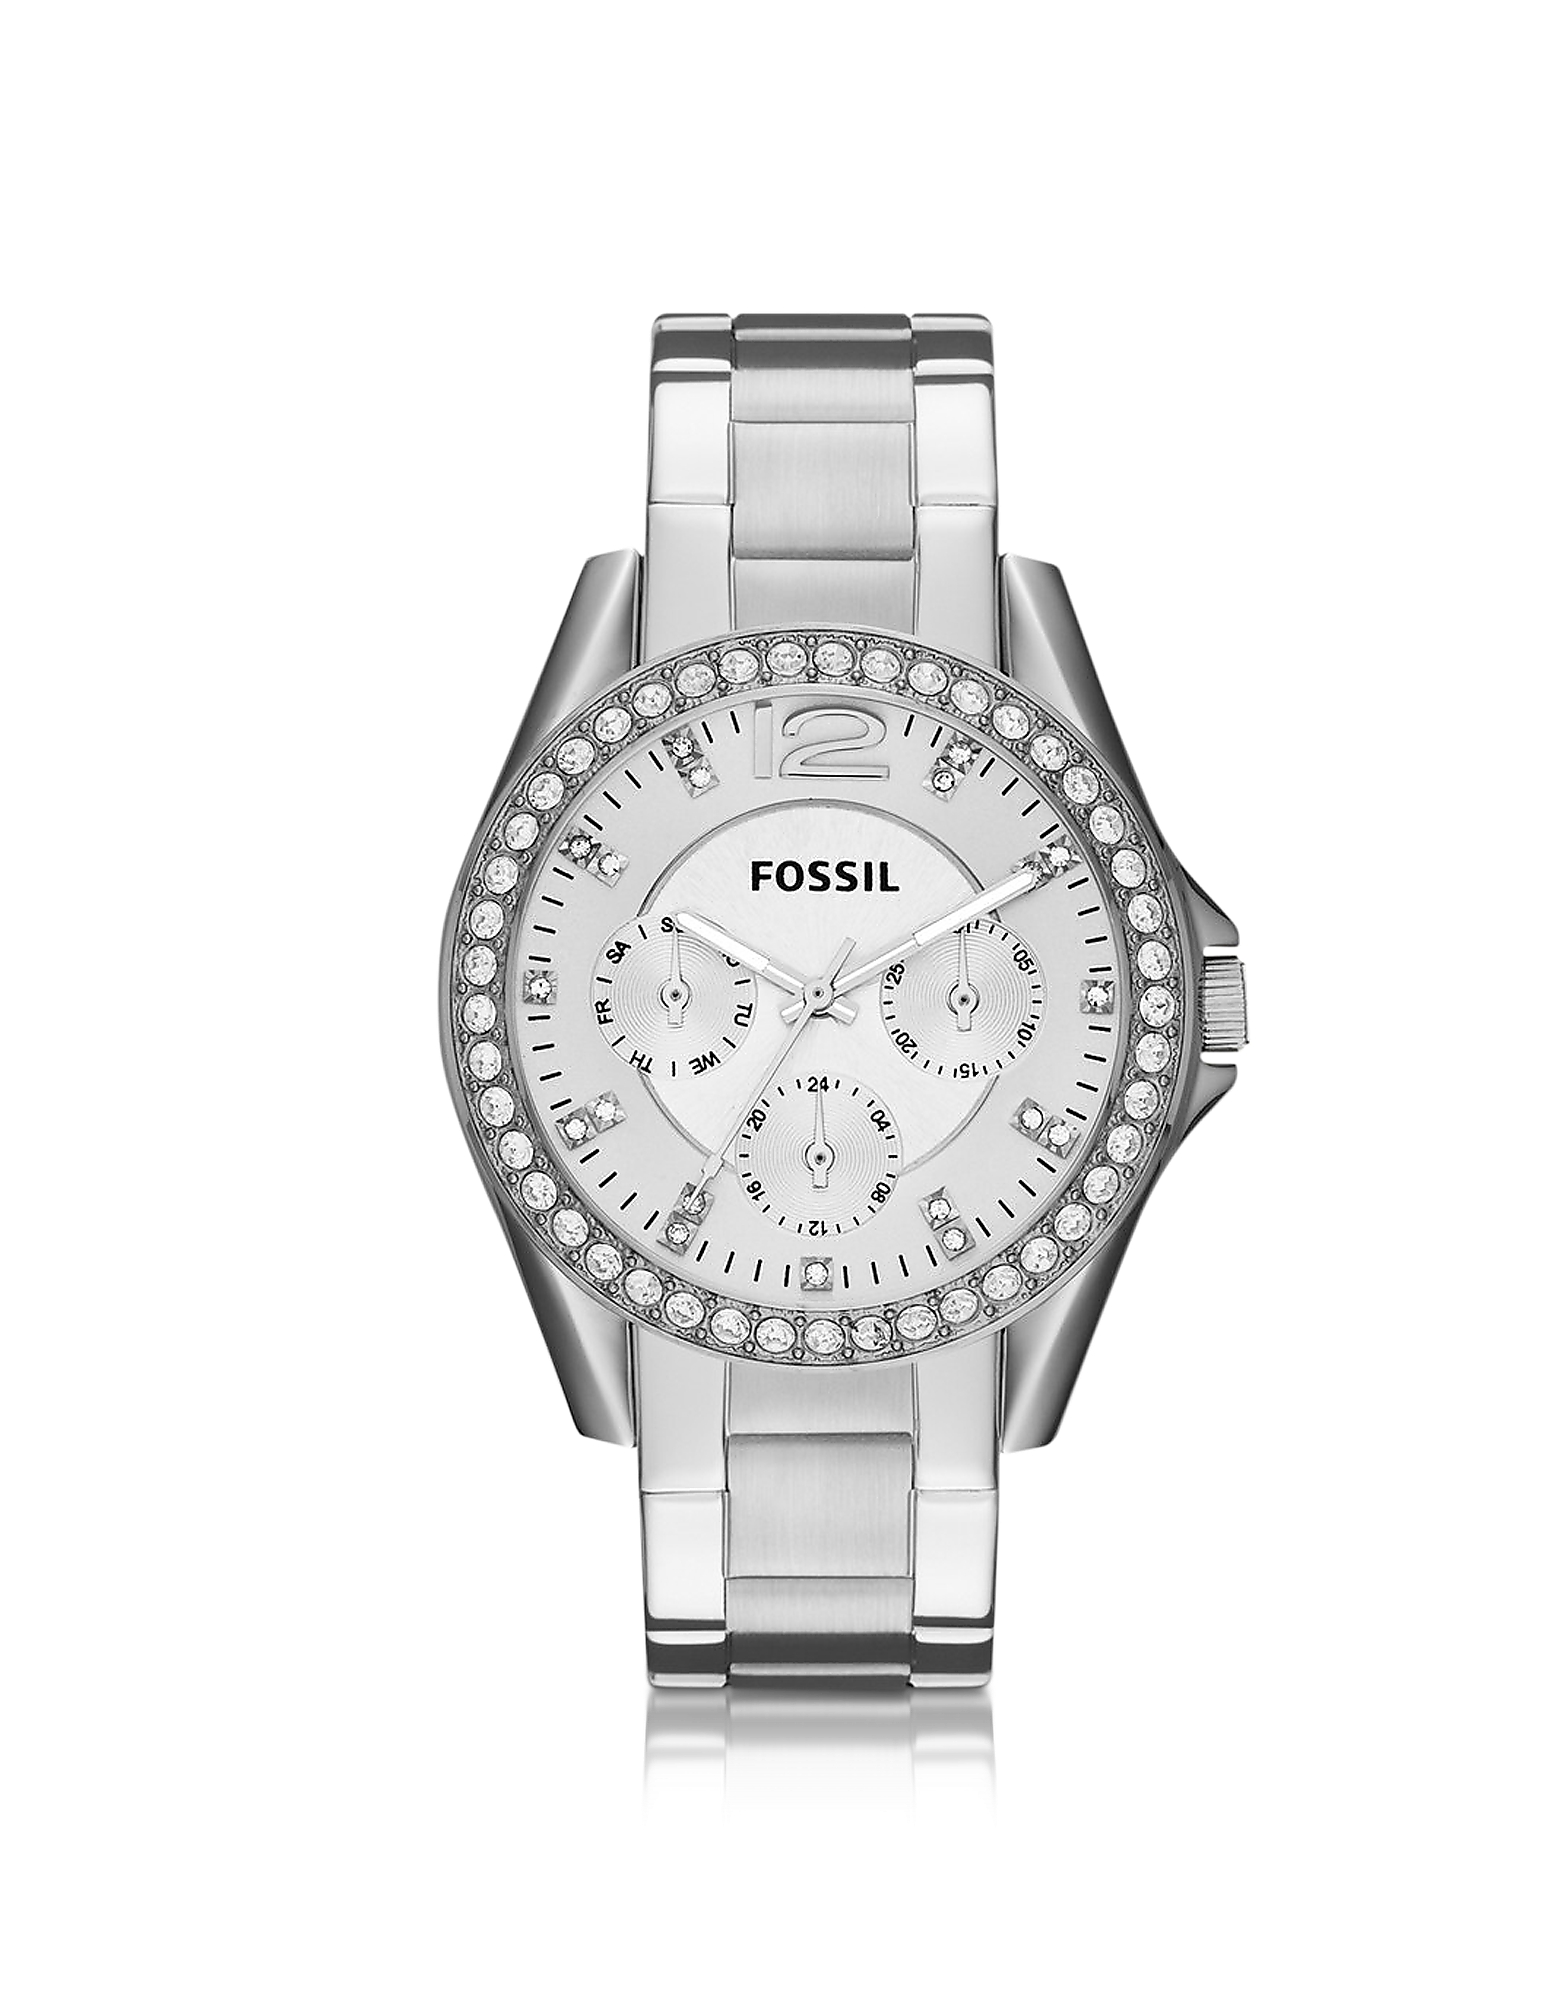 Fossil Women's Watches, Riley Multifunction Silver Stainless Steel Women's Watch